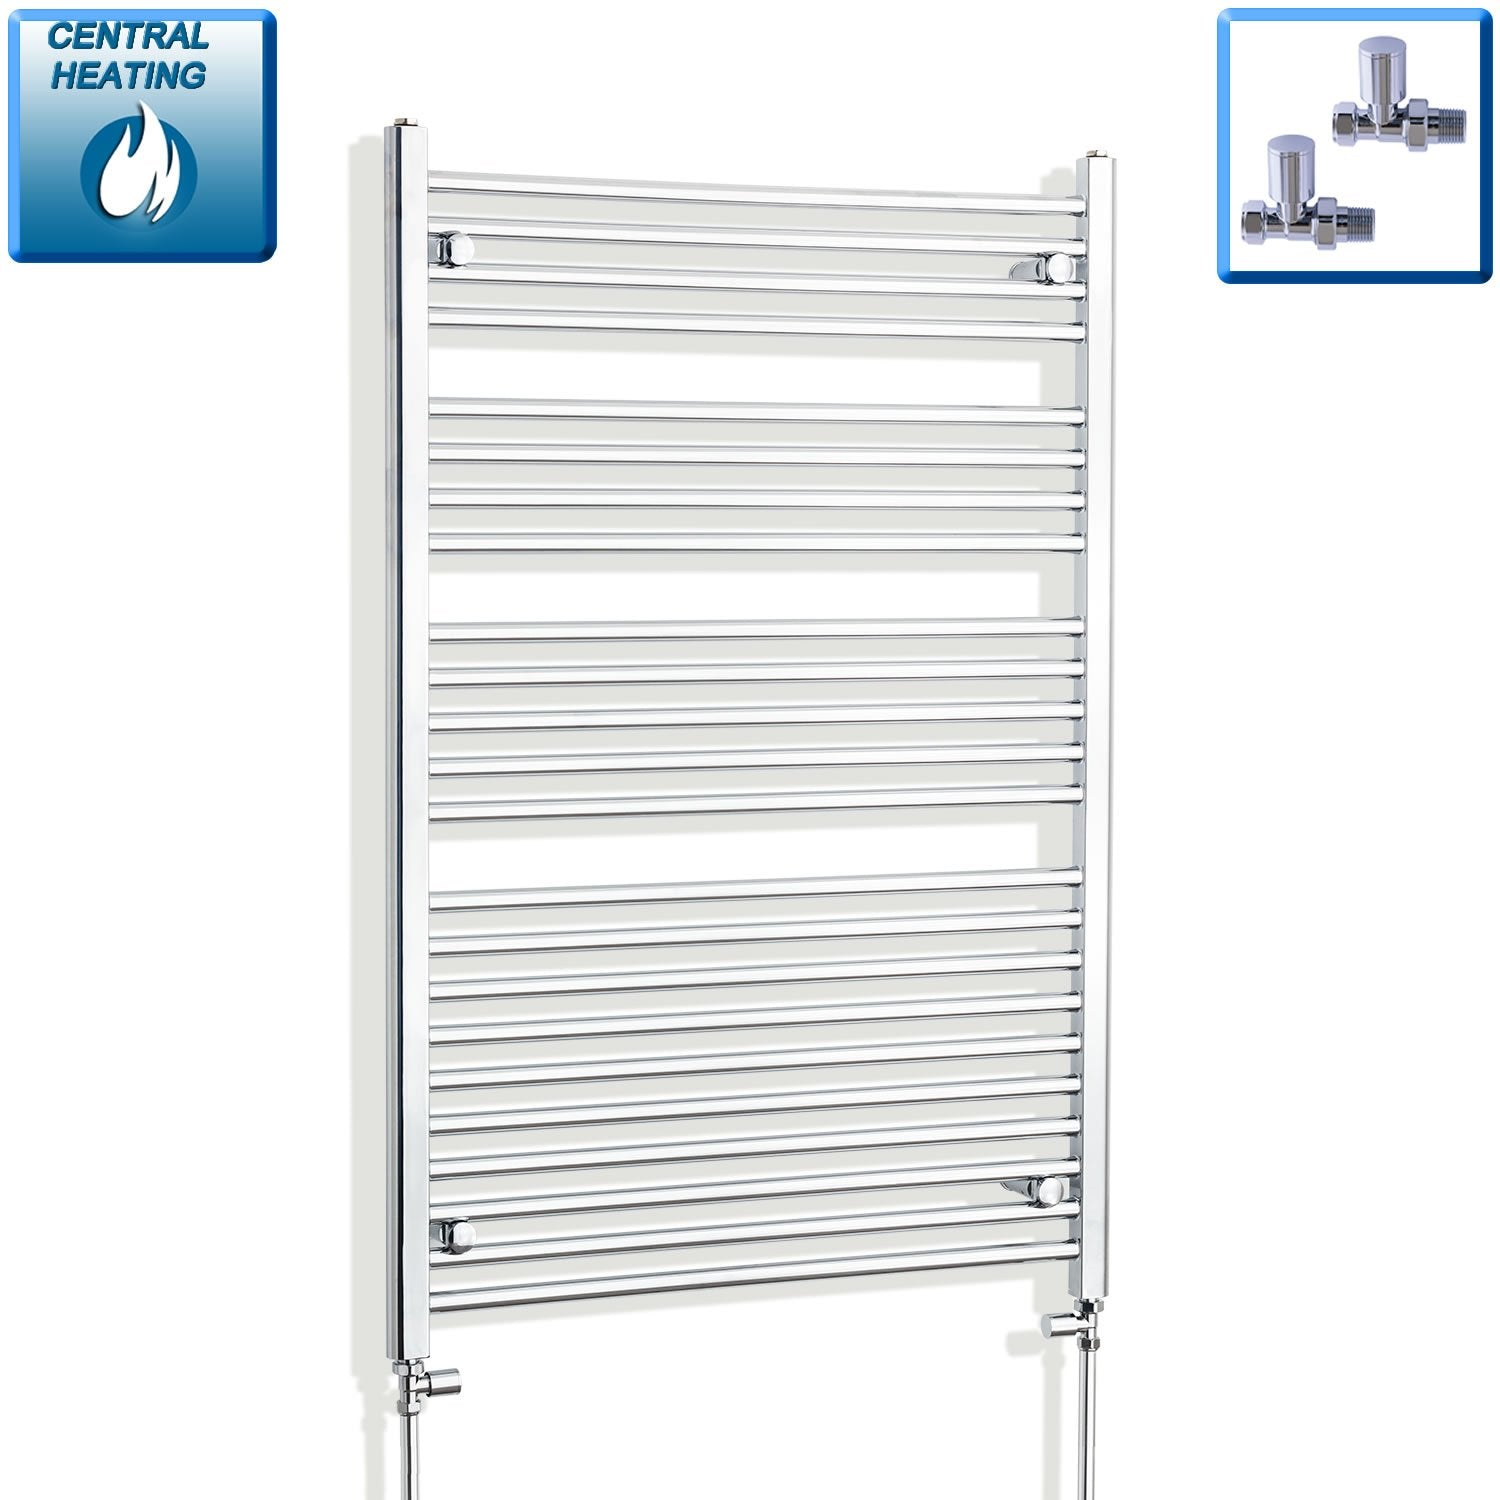 900mm Wide 1200mm High Flat Chrome Heated Towel Rail Radiator HTR,With Straight Valve